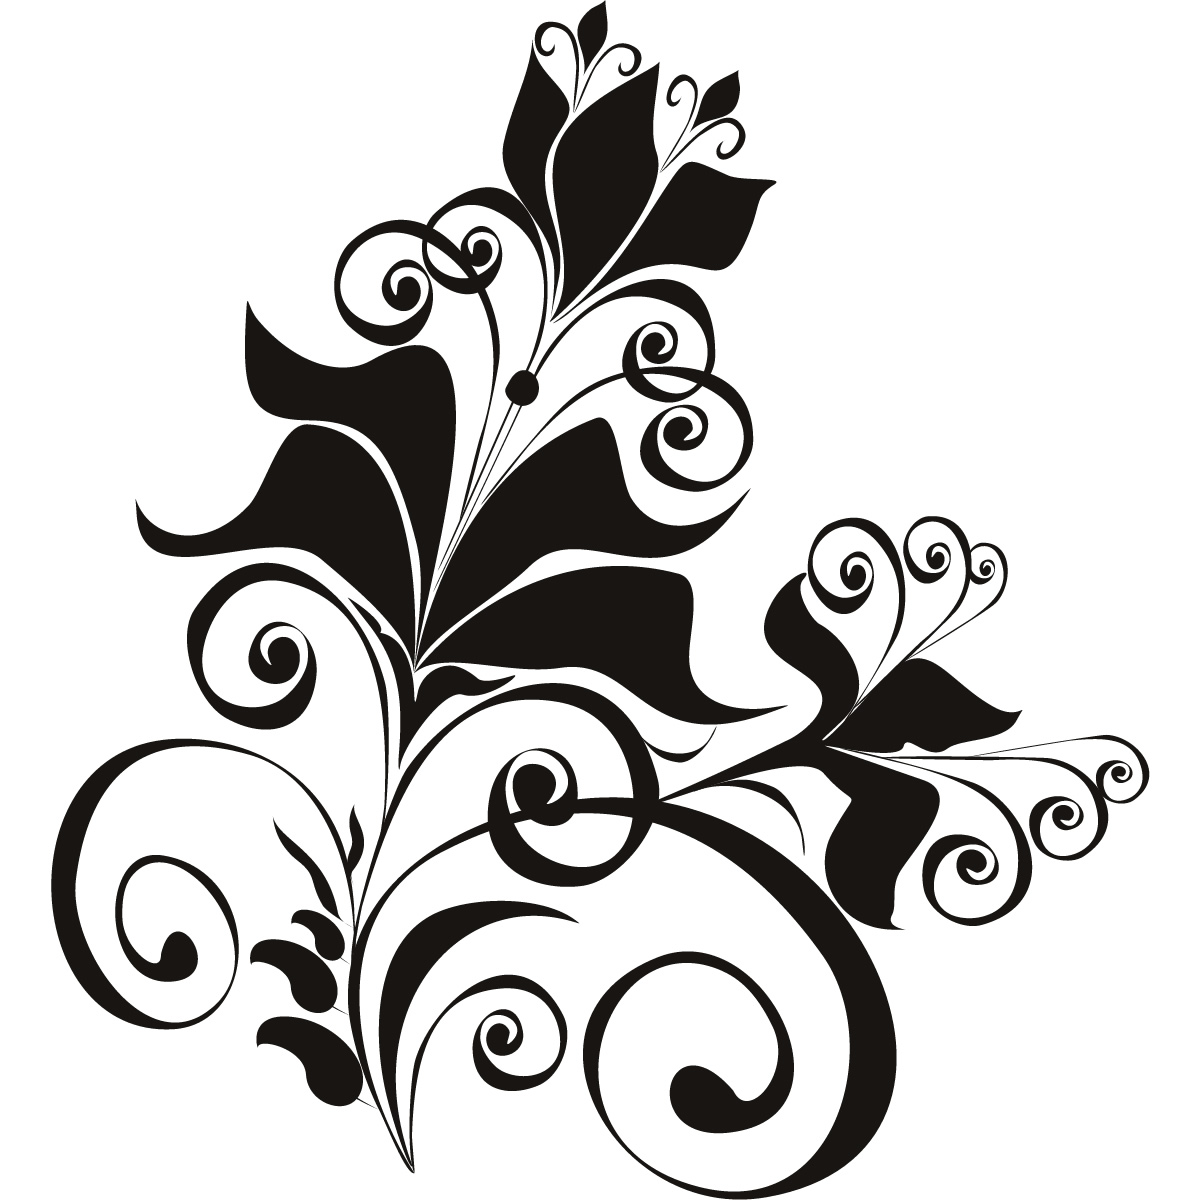 Free Floral Design, Download Free Clip Art, Free Clip Art on.